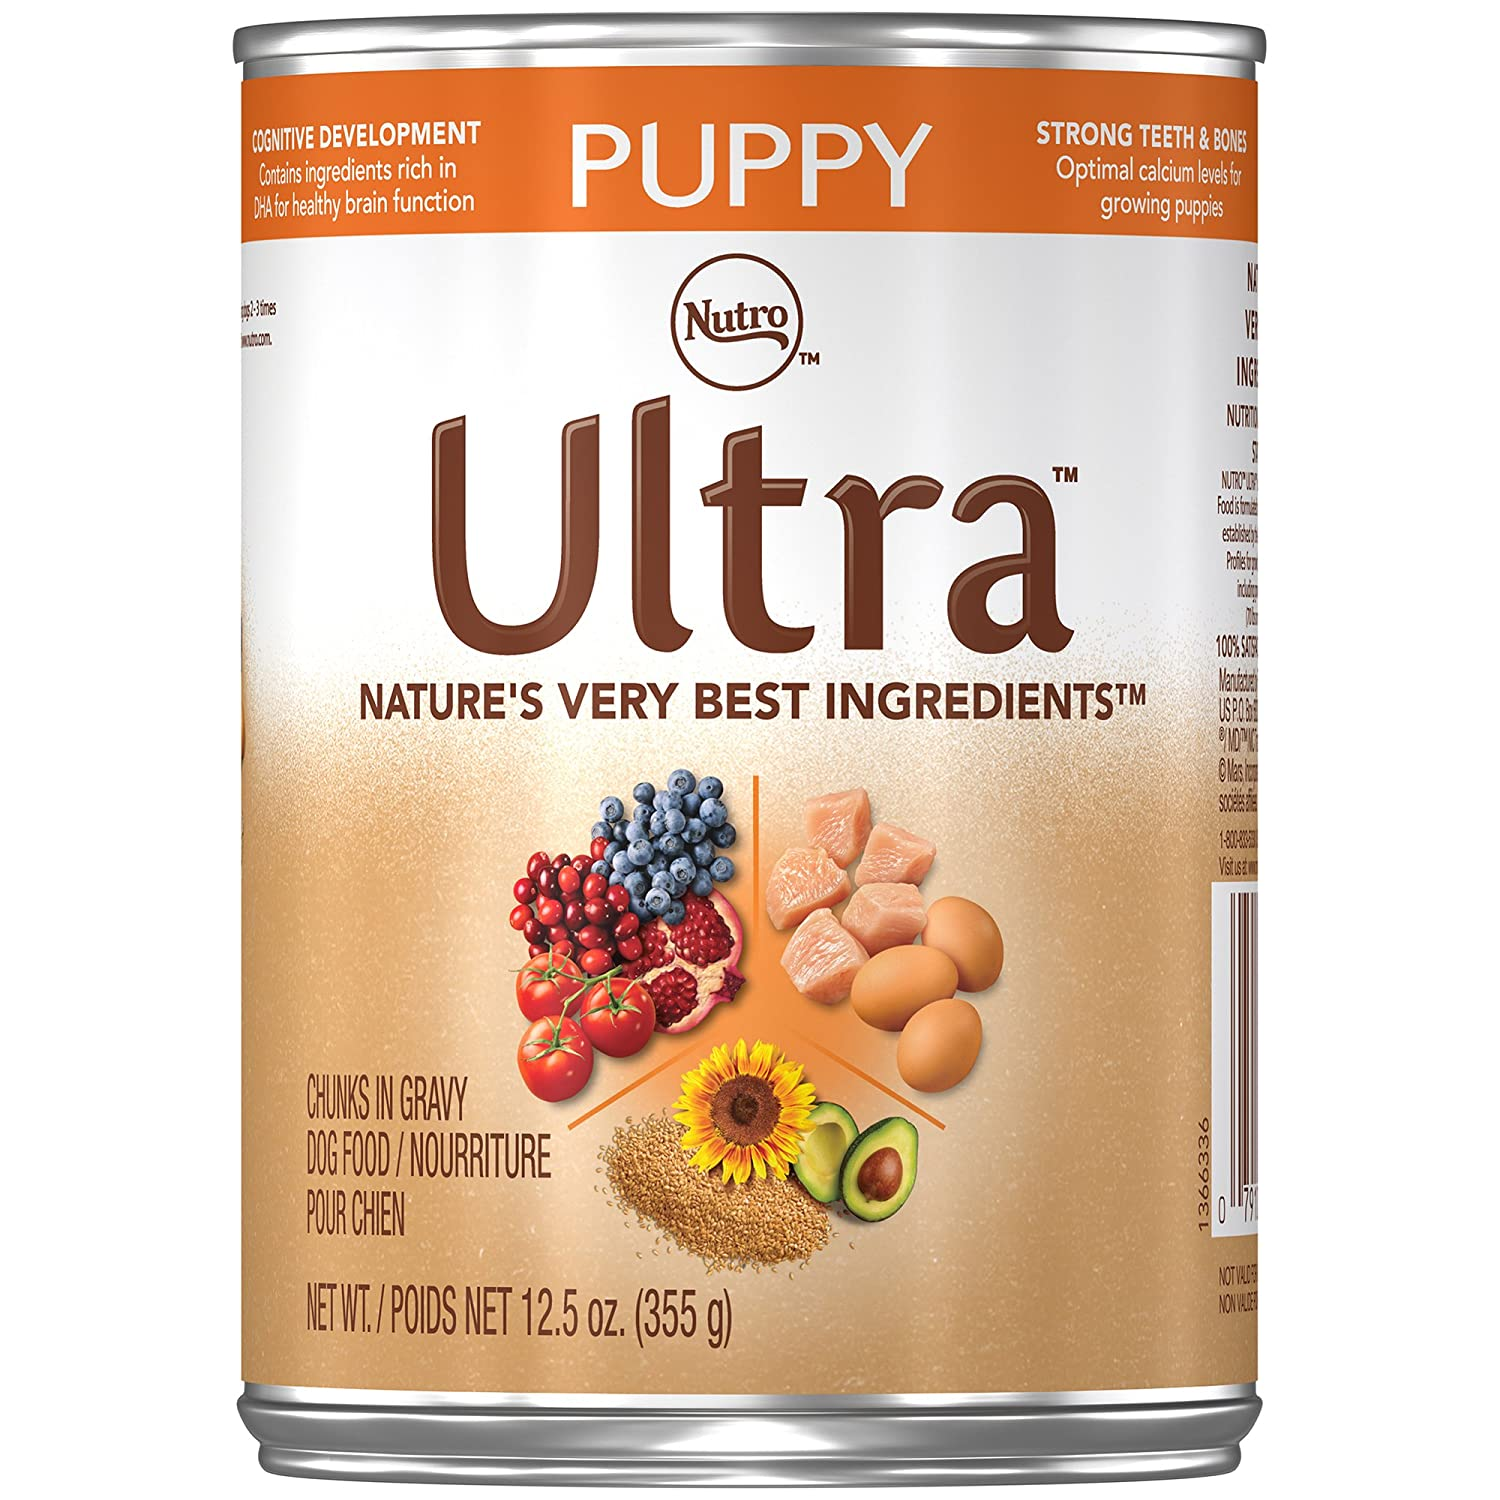 Nutro Ultra Puppy Canned Puppy Food, 12.5 oz.